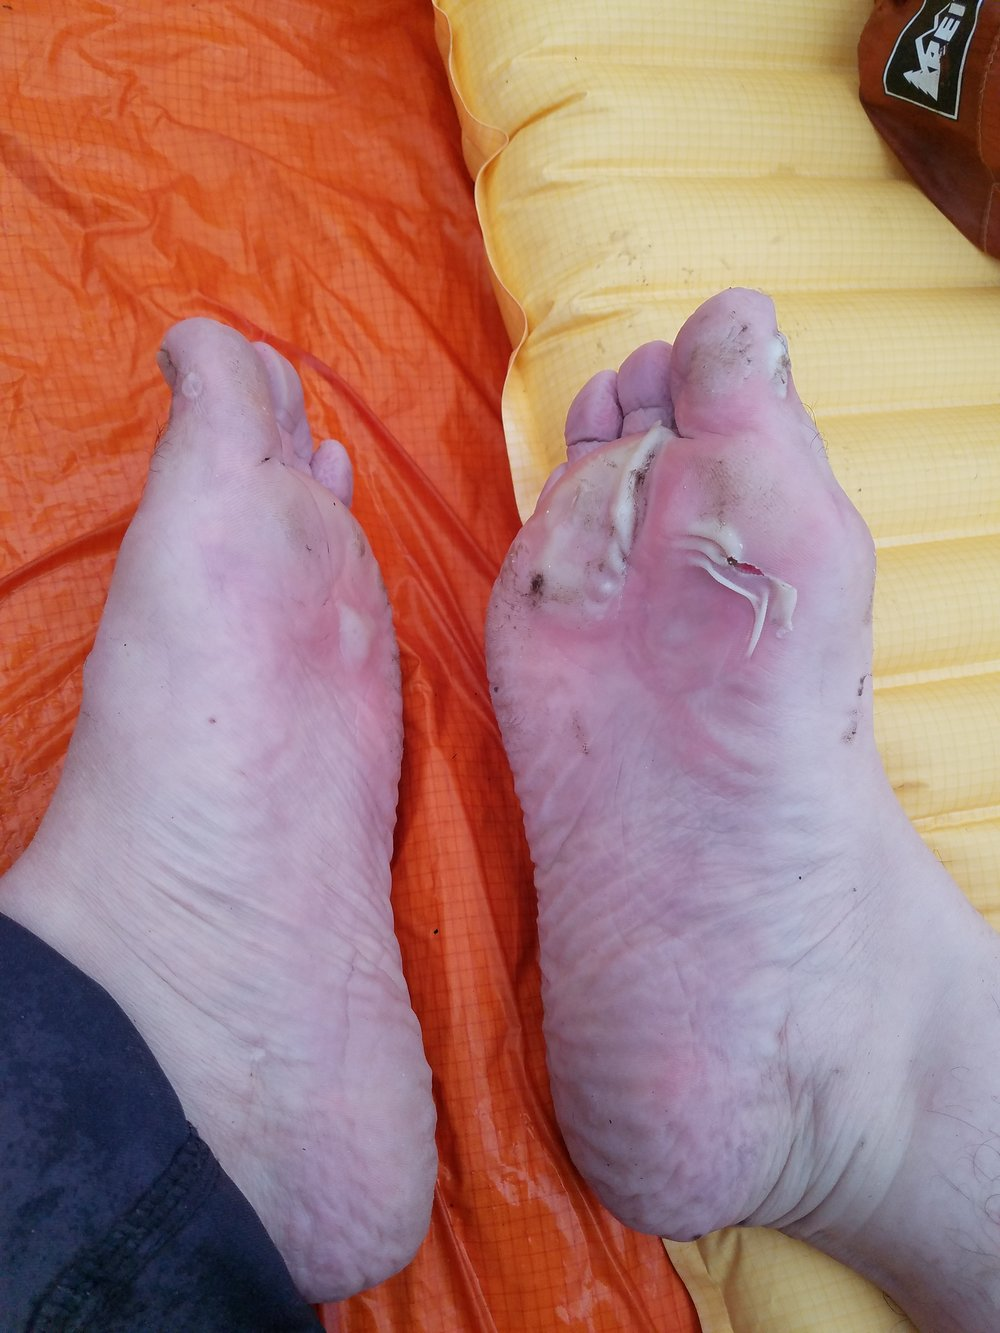 Yeah, I walked on those for awhile. And this photo was before the REAL infection...